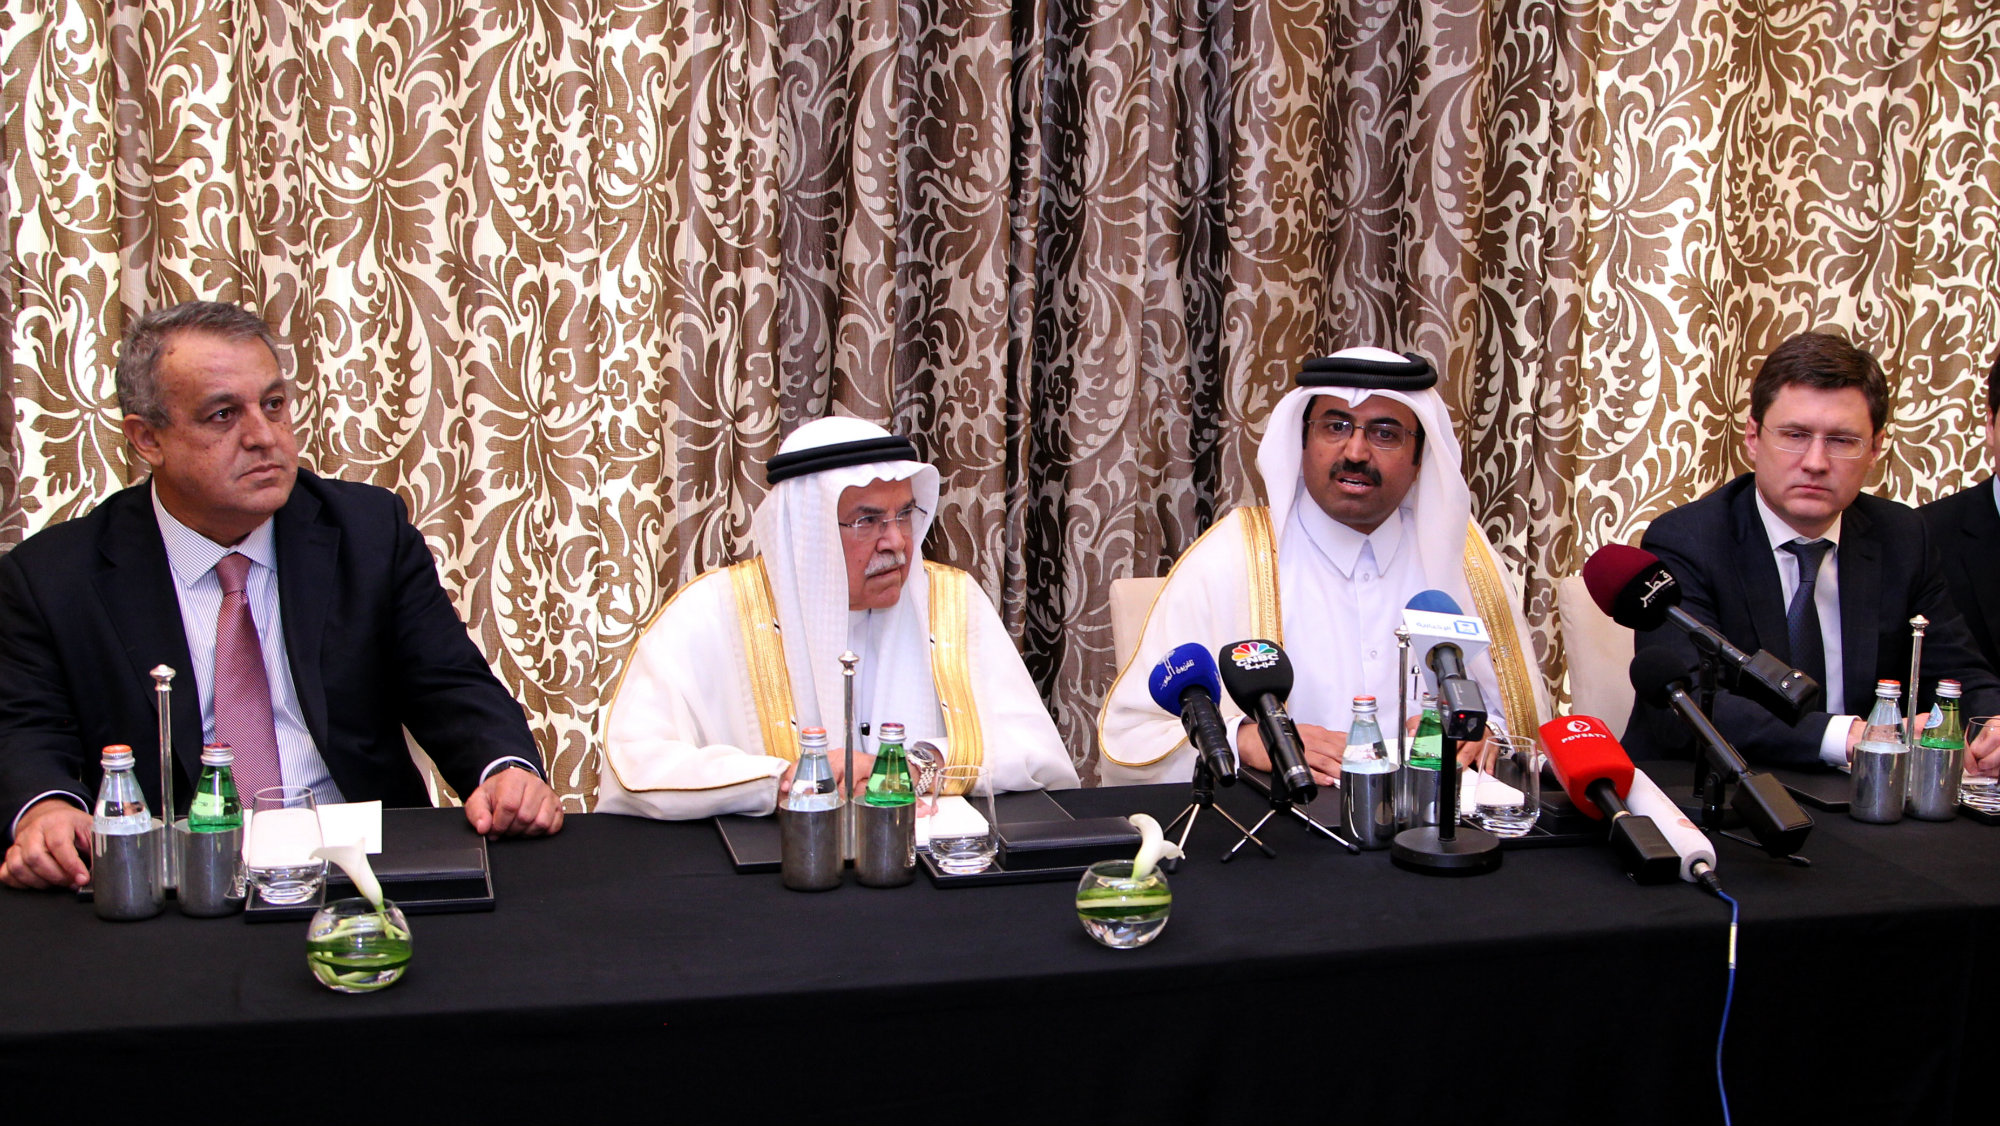 (L-R) Venezuelan Minister of Petroleum and Mining Eulogio Del Pino, Saudi Minister of Oil and Mineral Resources Ali al-Naimi, Qatari Minister of Energy and Industry Mohammed Saleh al-Sada and Russian Energy Minister Alexander Novak give a press conference in Doha, Qatar, 16 February 2016.